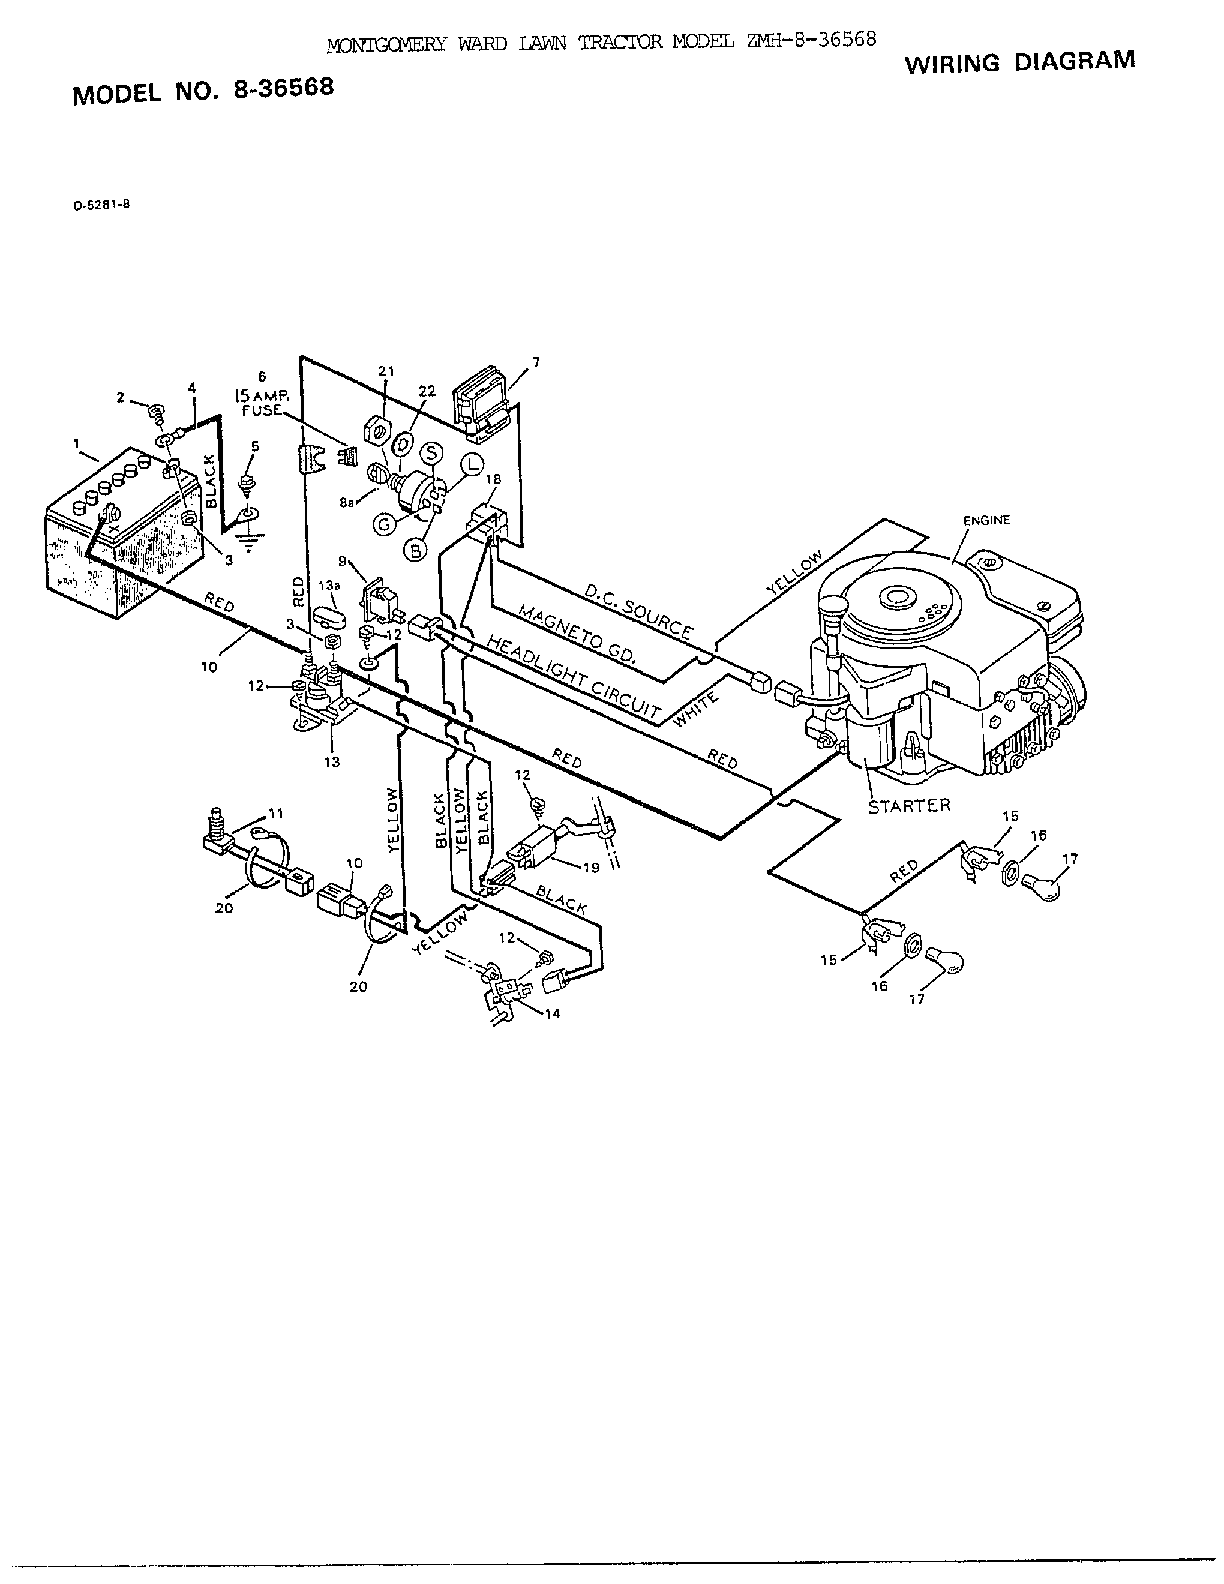 hight resolution of looking for murray model 8 36568 front engine lawn tractor repair murray lawn mower engine diagram